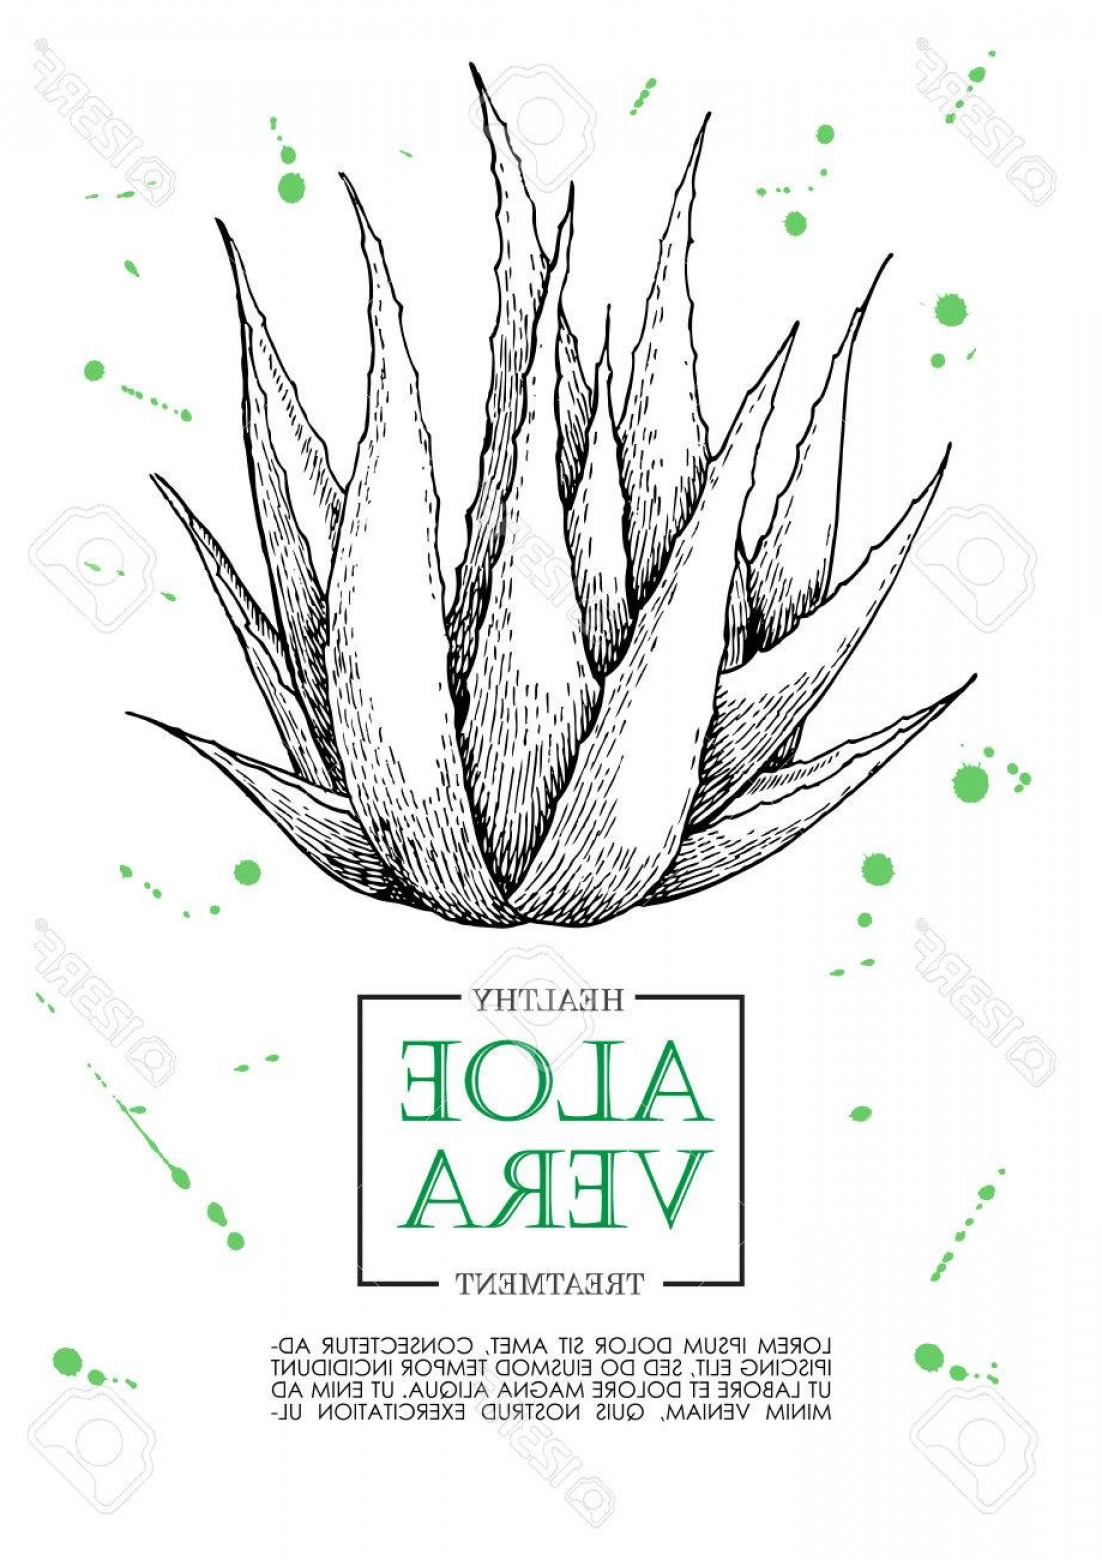 Aloe Vector Graphics: Photostock Vector Vector Aloe Vera Hand Drawn Illustrations Detailed Drawing Aloe Vera Banner Poster Label Brochure Te